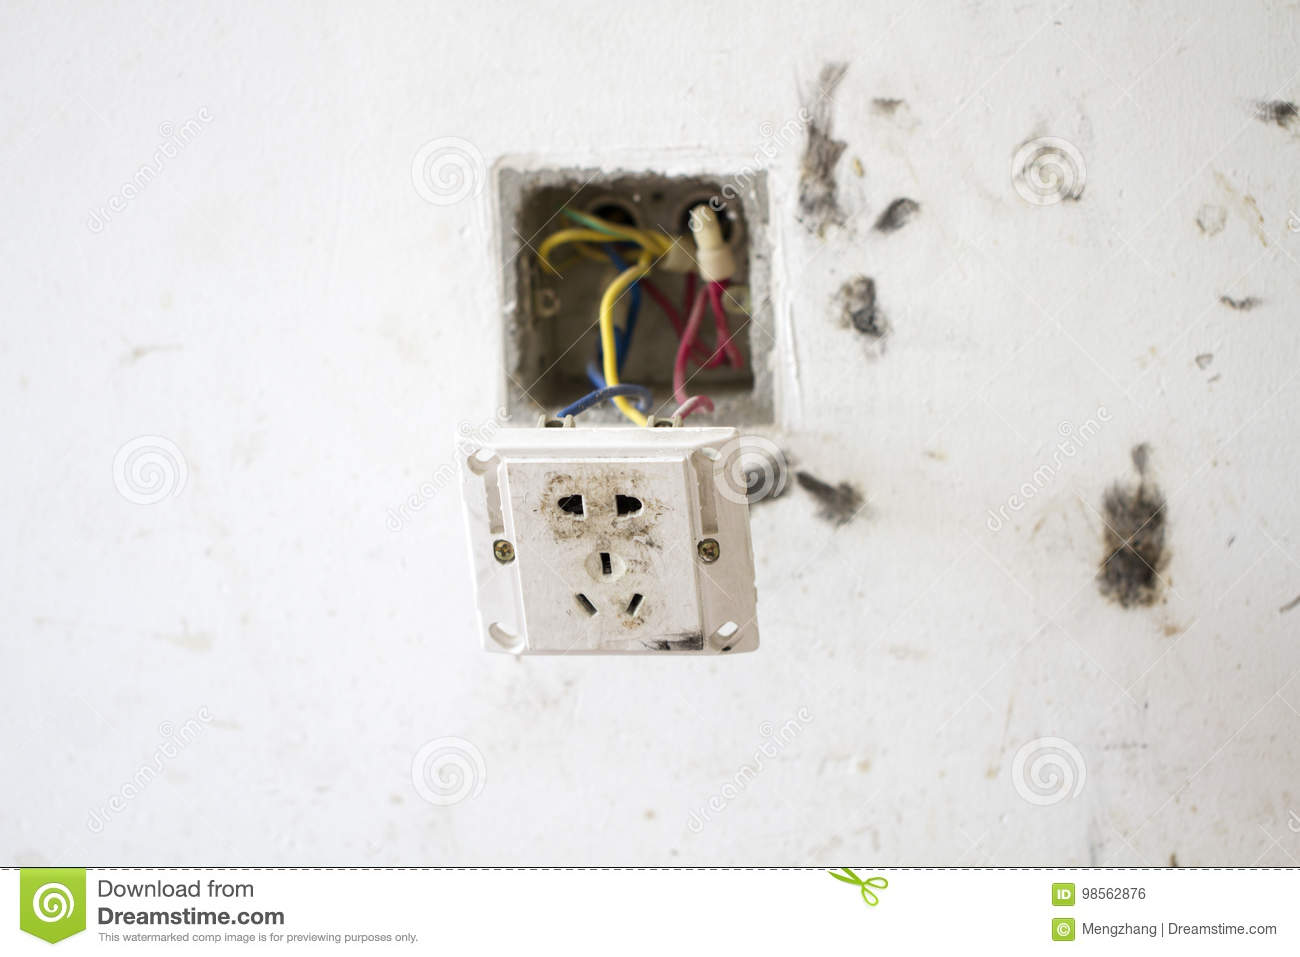 Electrical Renovation Work, Light Plug Stock Photo - Image of collar ...